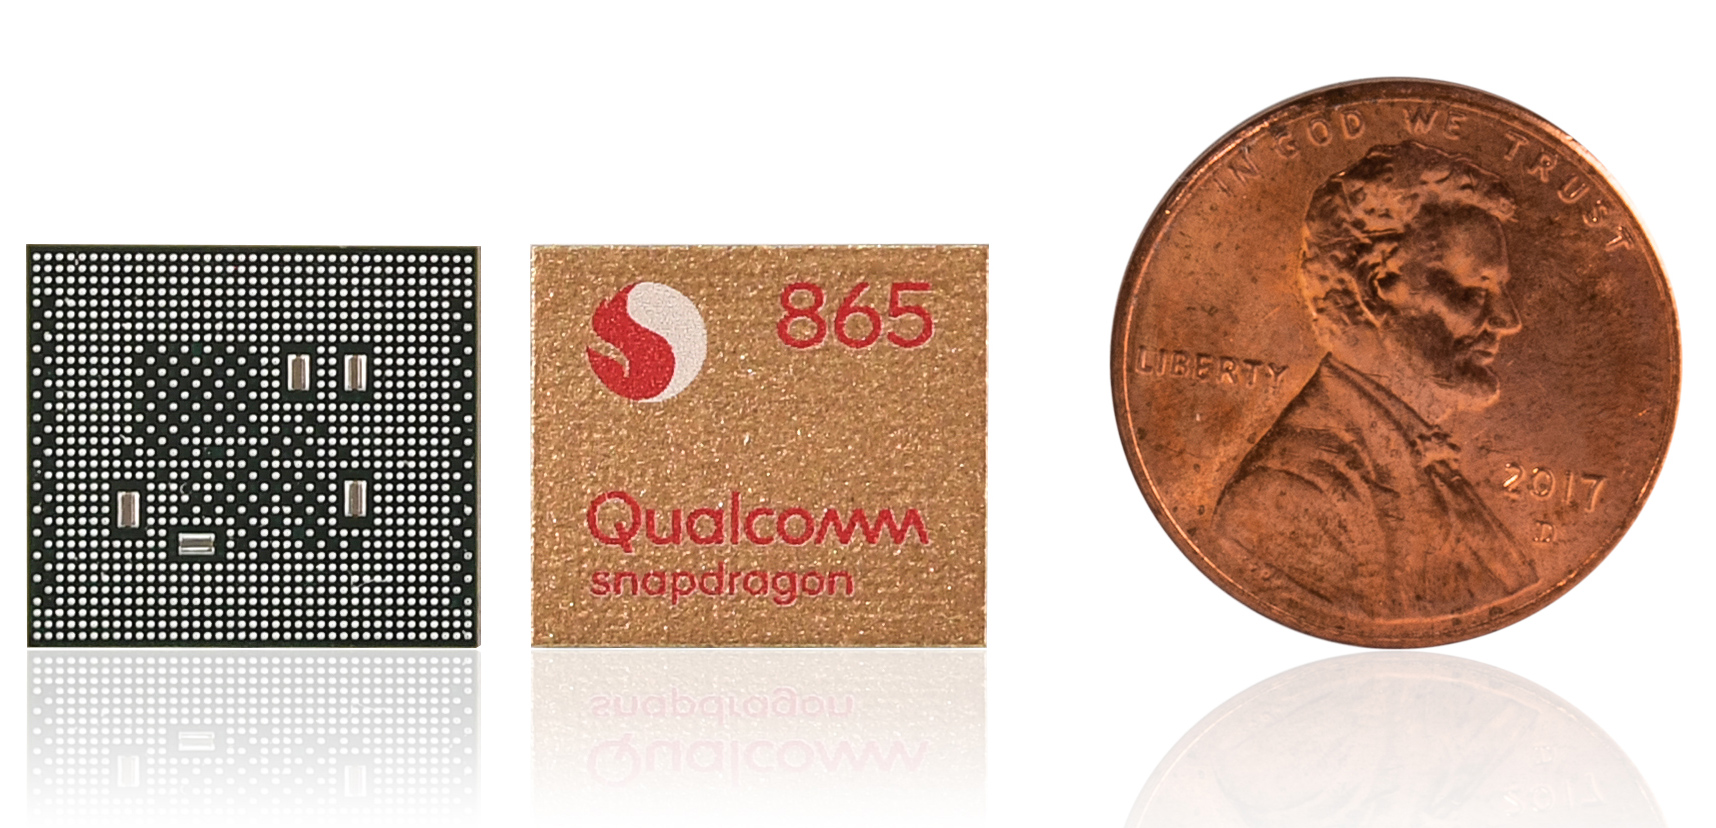 The Snapdragon 865 with a penny for scale.